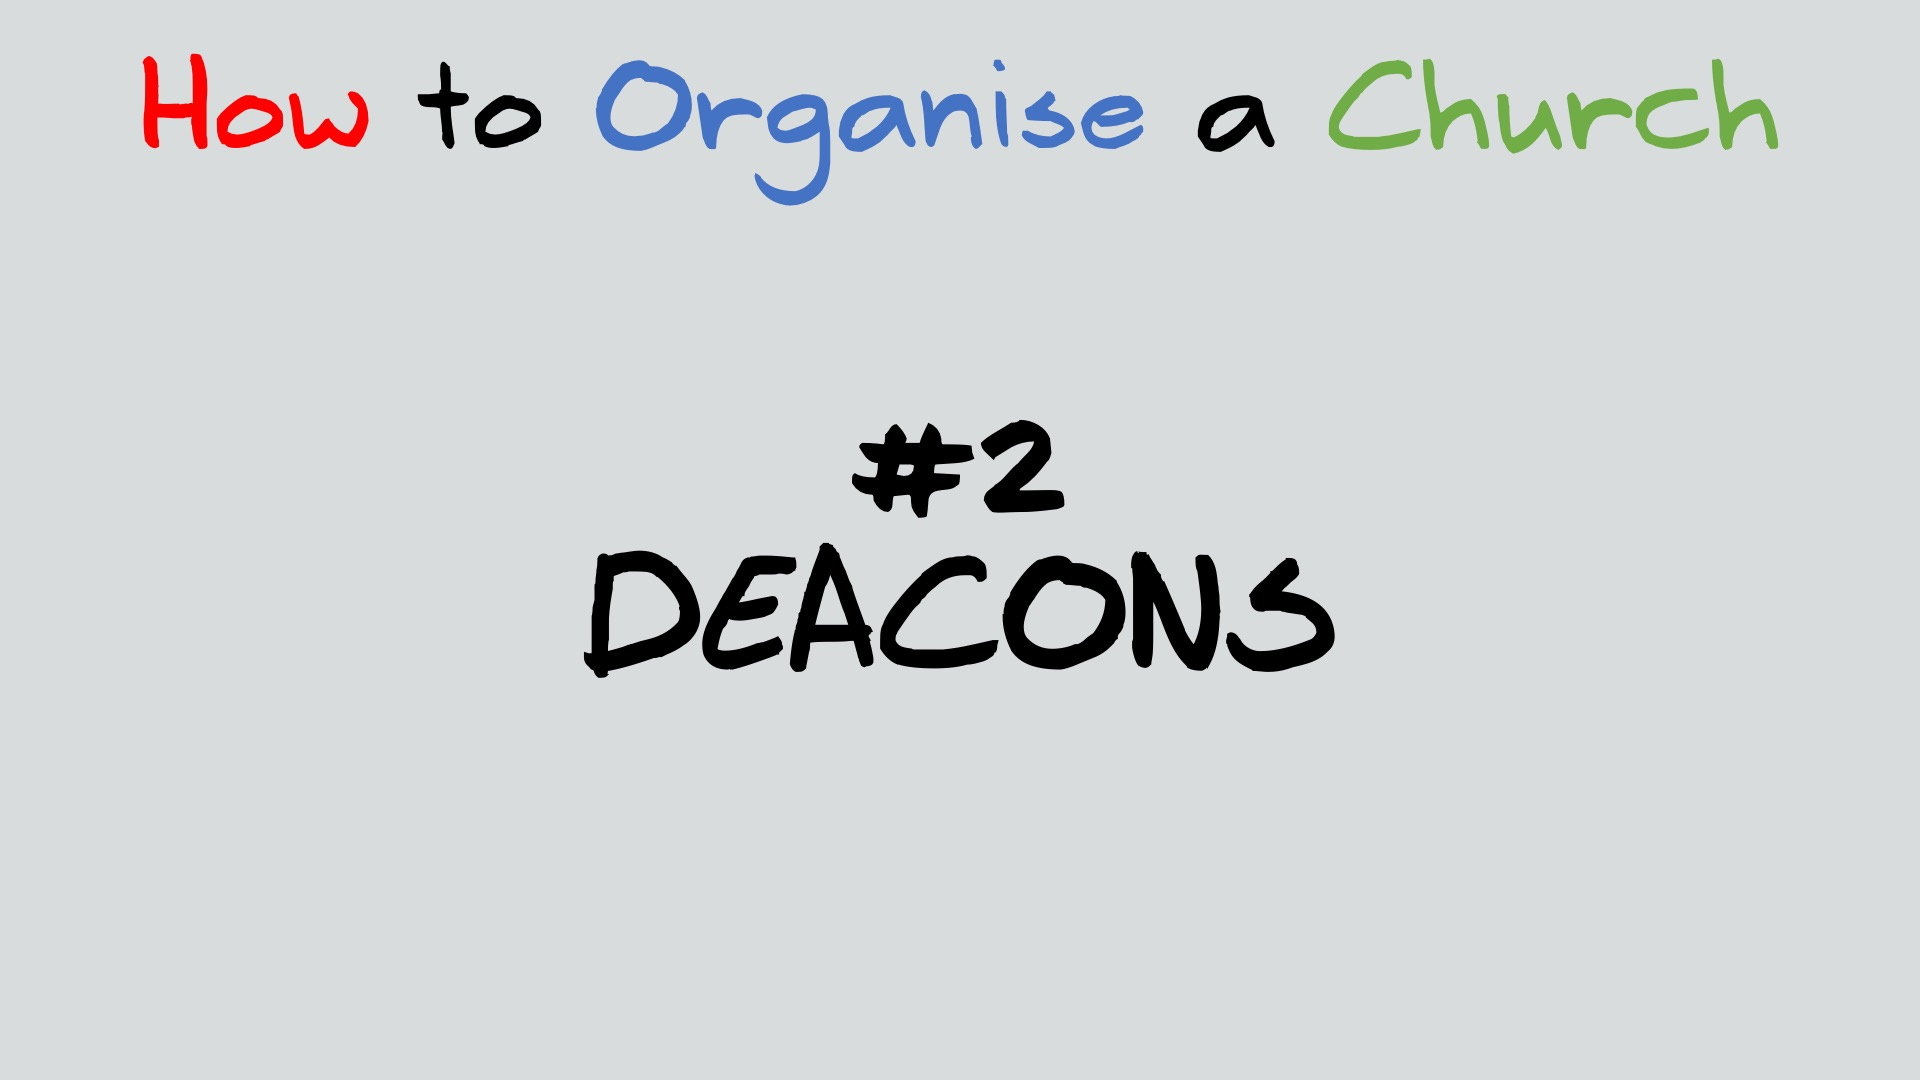 How to organise a church – Deacons